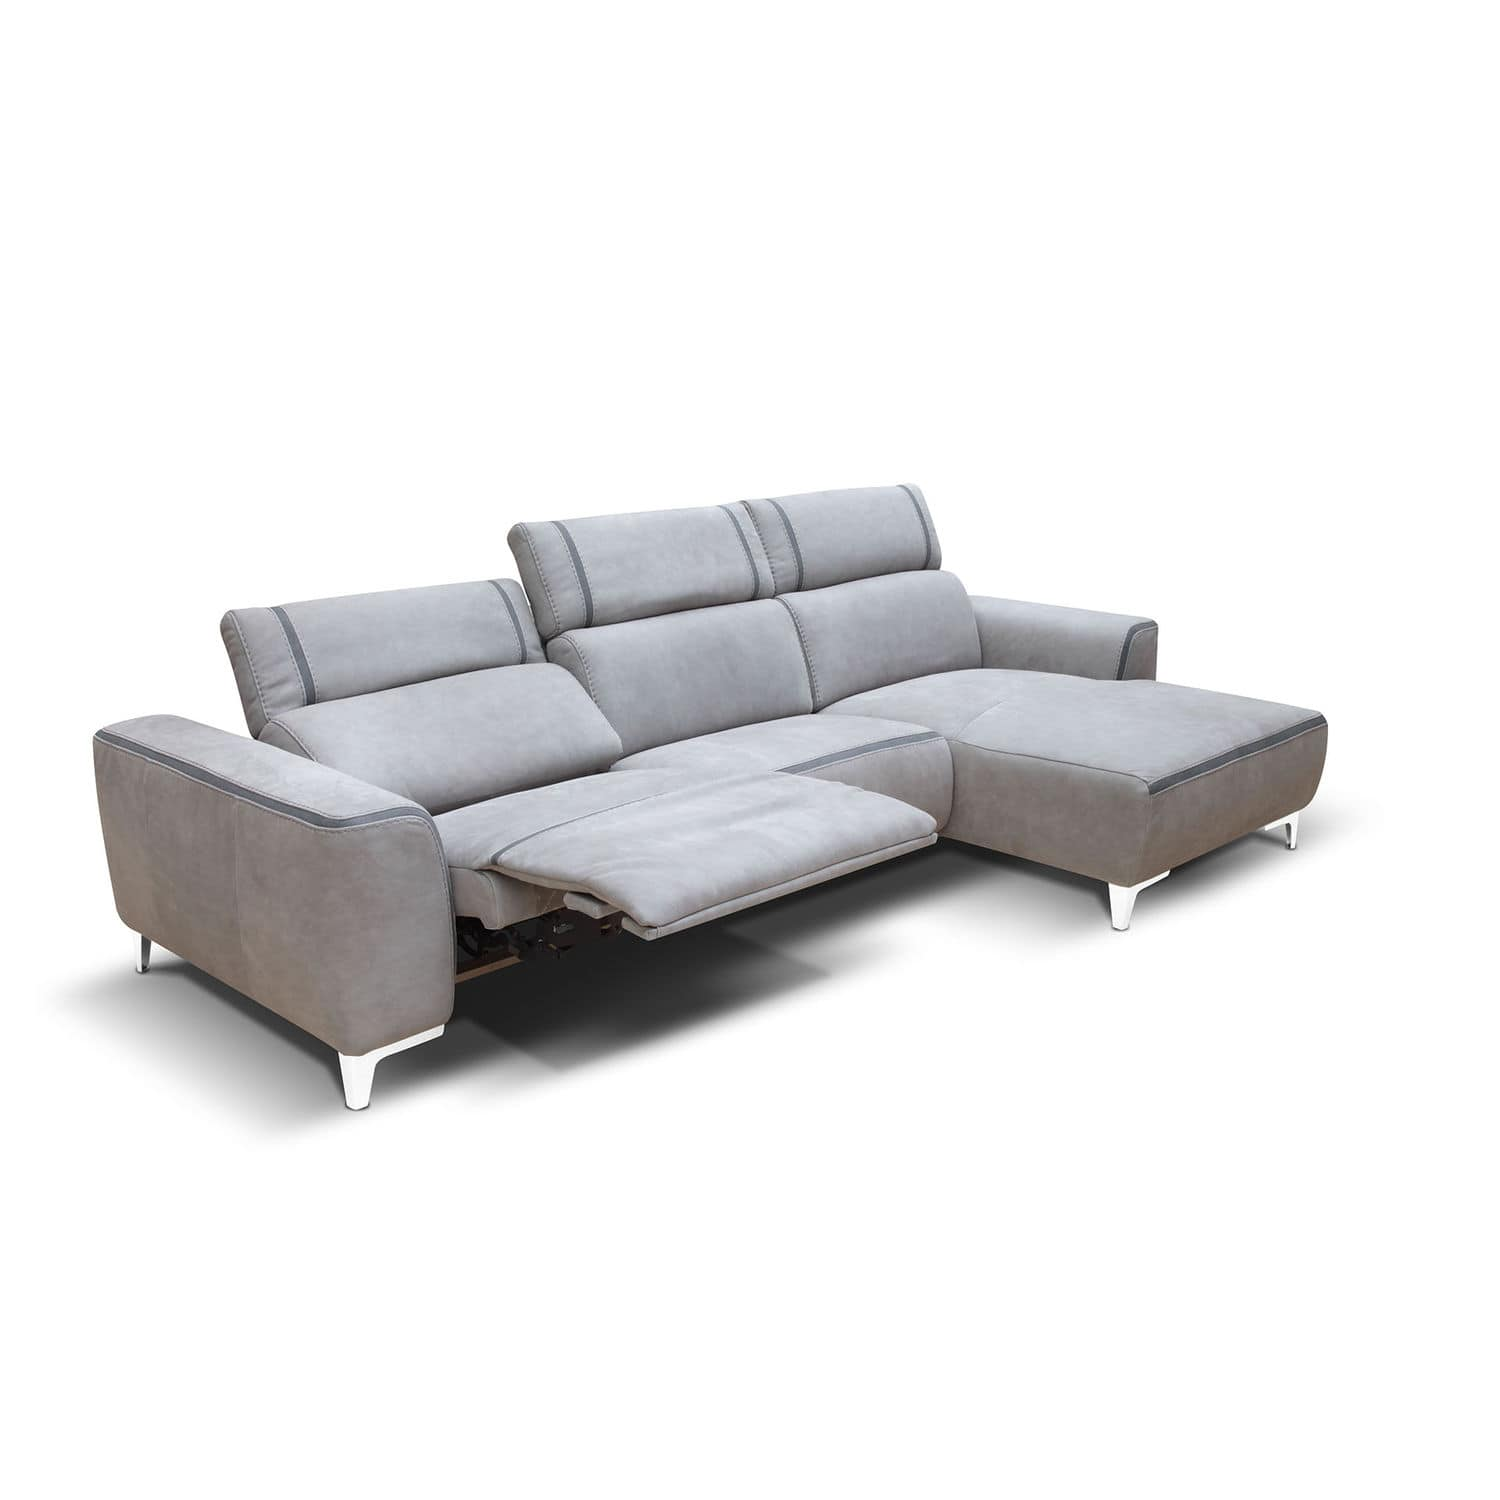 Contemporary sofa / fabric / reclining - ARES - Rossini